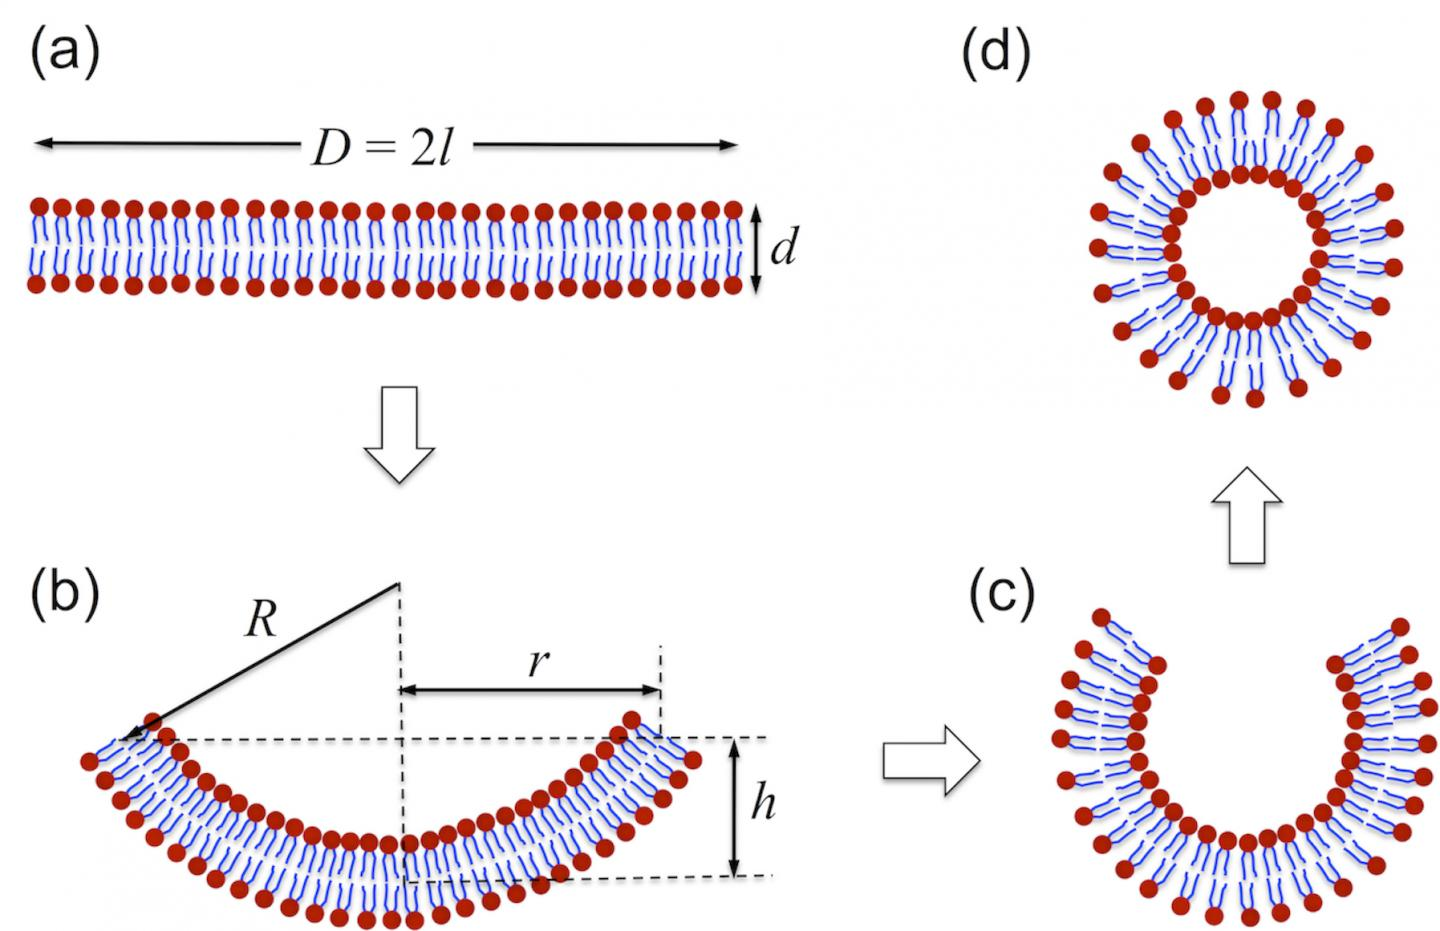 A Schematic Illustration of Vesicle Formation Via Self-Assembly